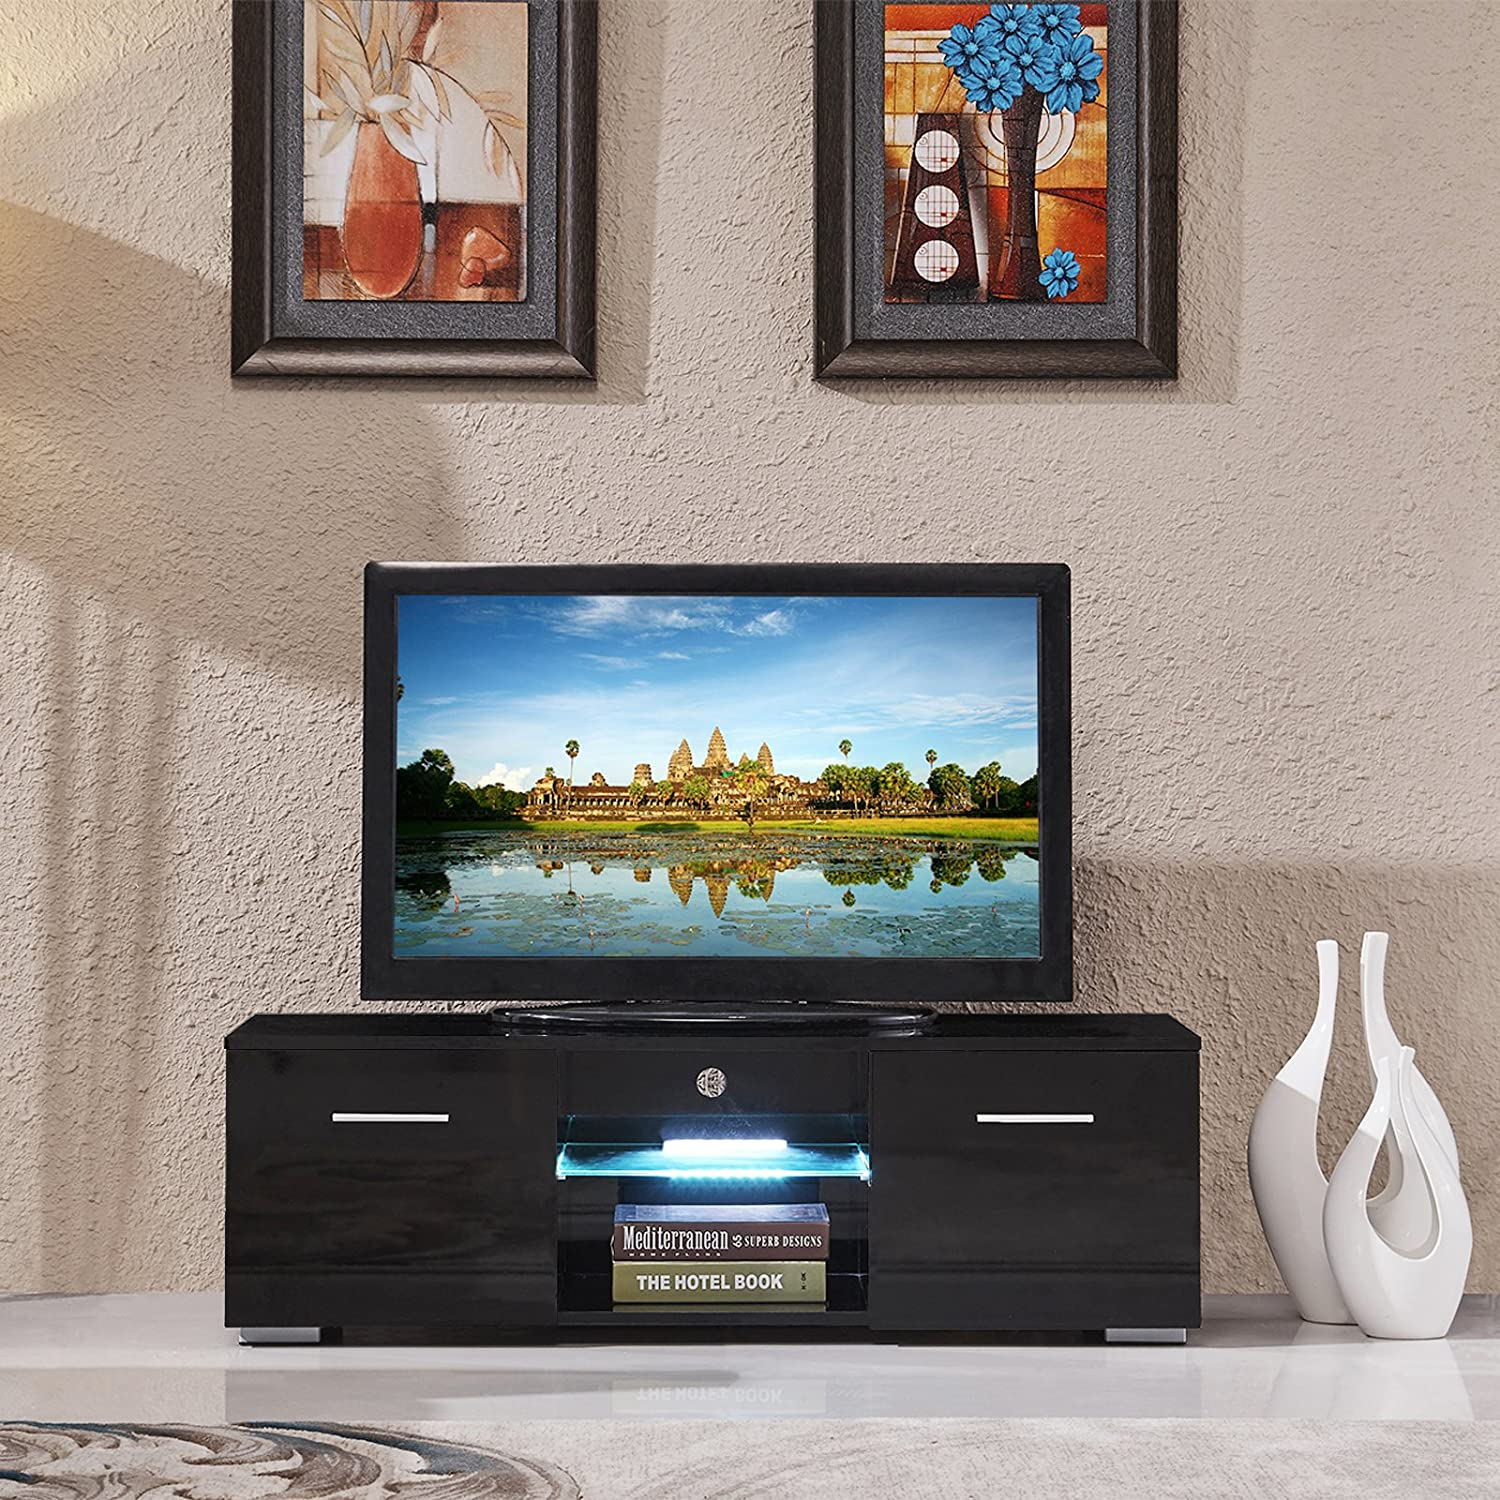 Amazon.com: SUNCOO TV Stand Media Console Cabinet LED Shelves With 2  Drawers For Living Room Storage High Gloss Black For Up To 47 Inch TV  Screens: Kitchen ...